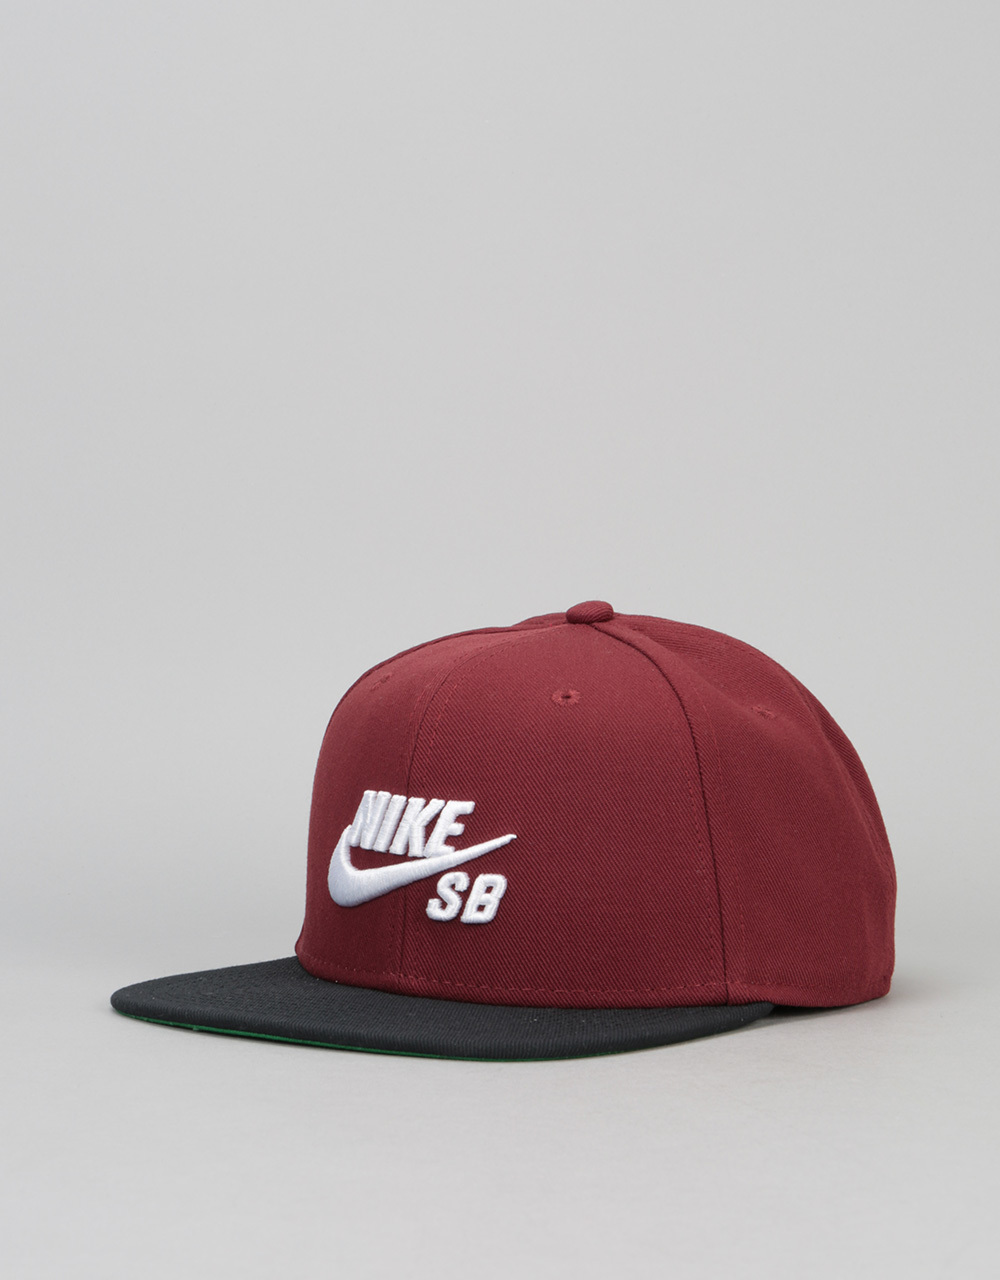 39db318394c Nike SB Icon Snapback Cap - Dark Team Red Black Pine Green White ...